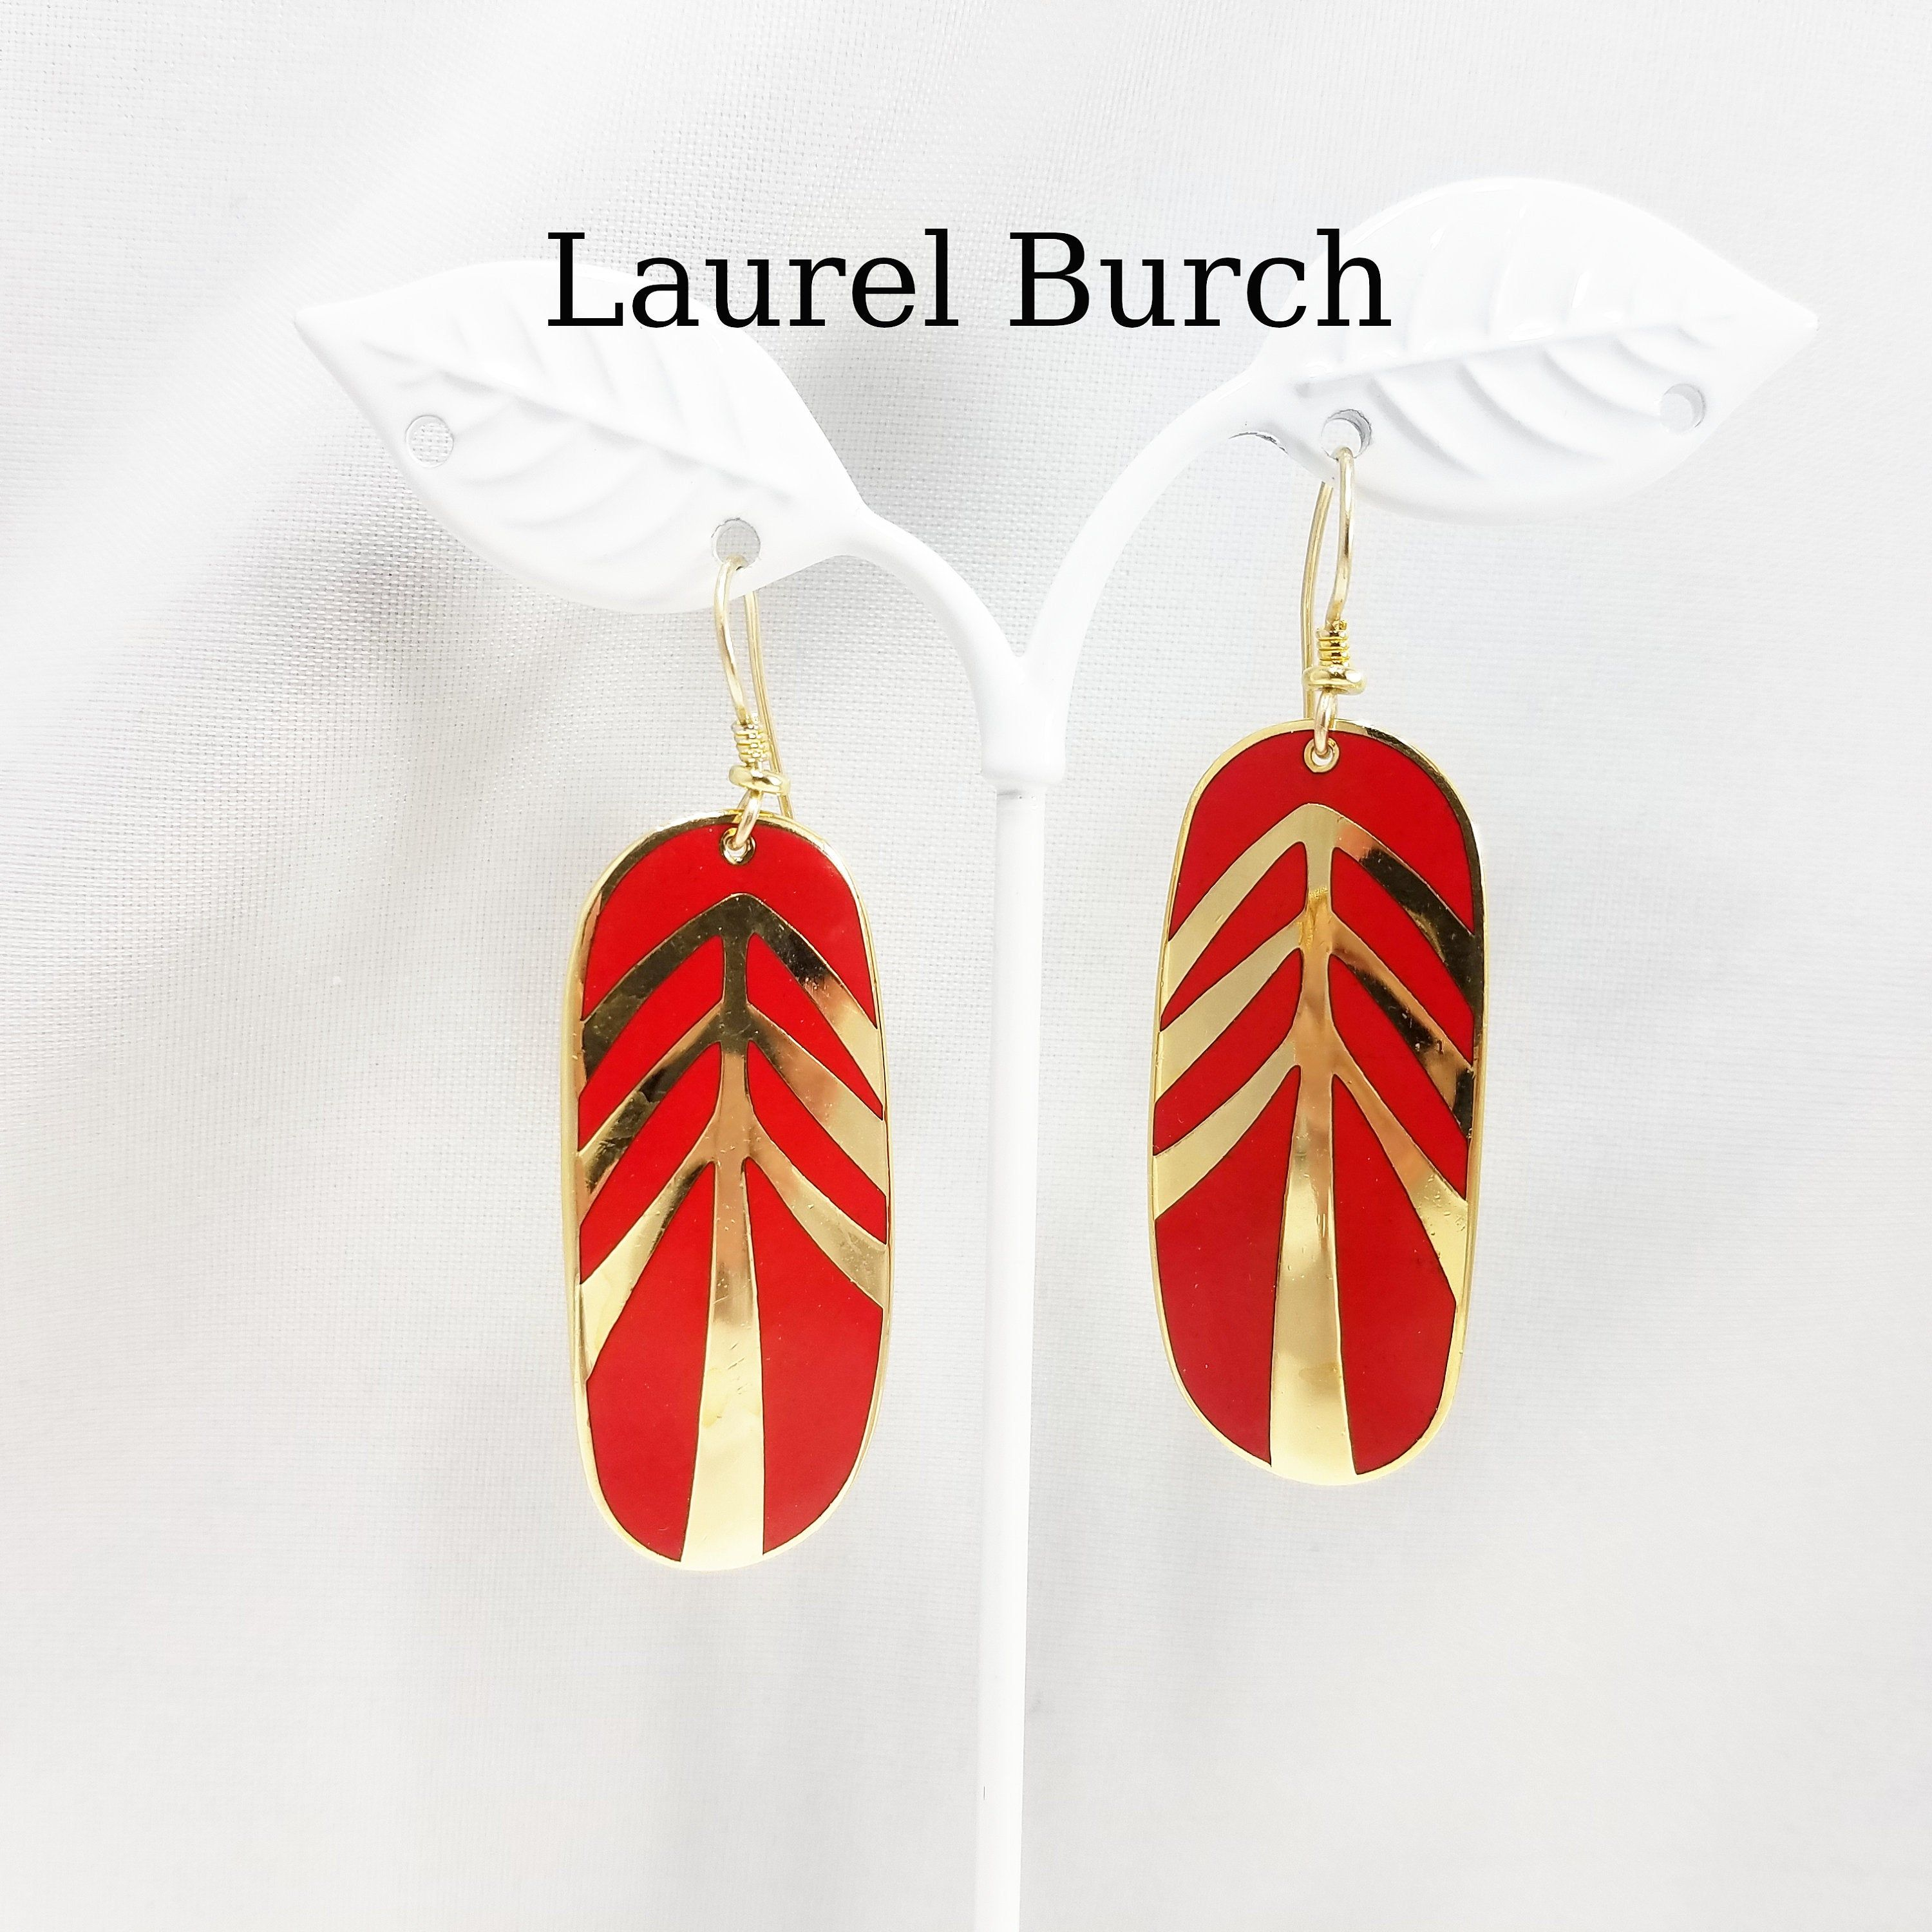 Laurel Burch MOON TIGER Cloisonne Earrings French Ear Wires Vintage Jewelry 1980s Red Gold